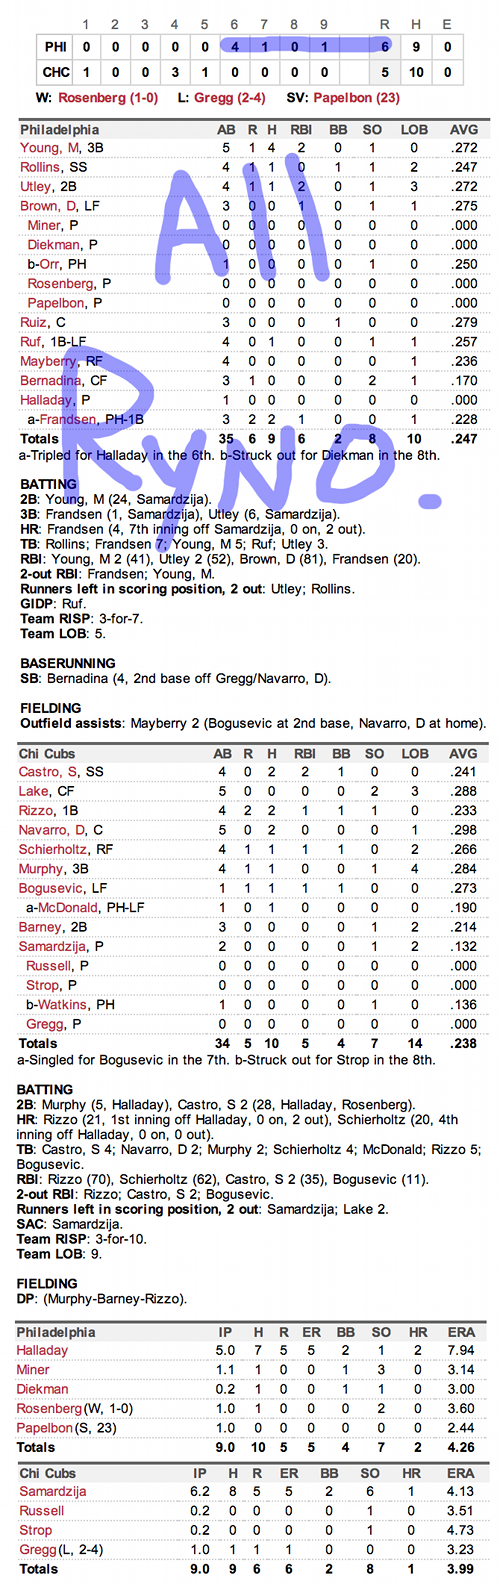 Enhanced Box Score: Phillies 6, Cubs 5 – August 30, 2013